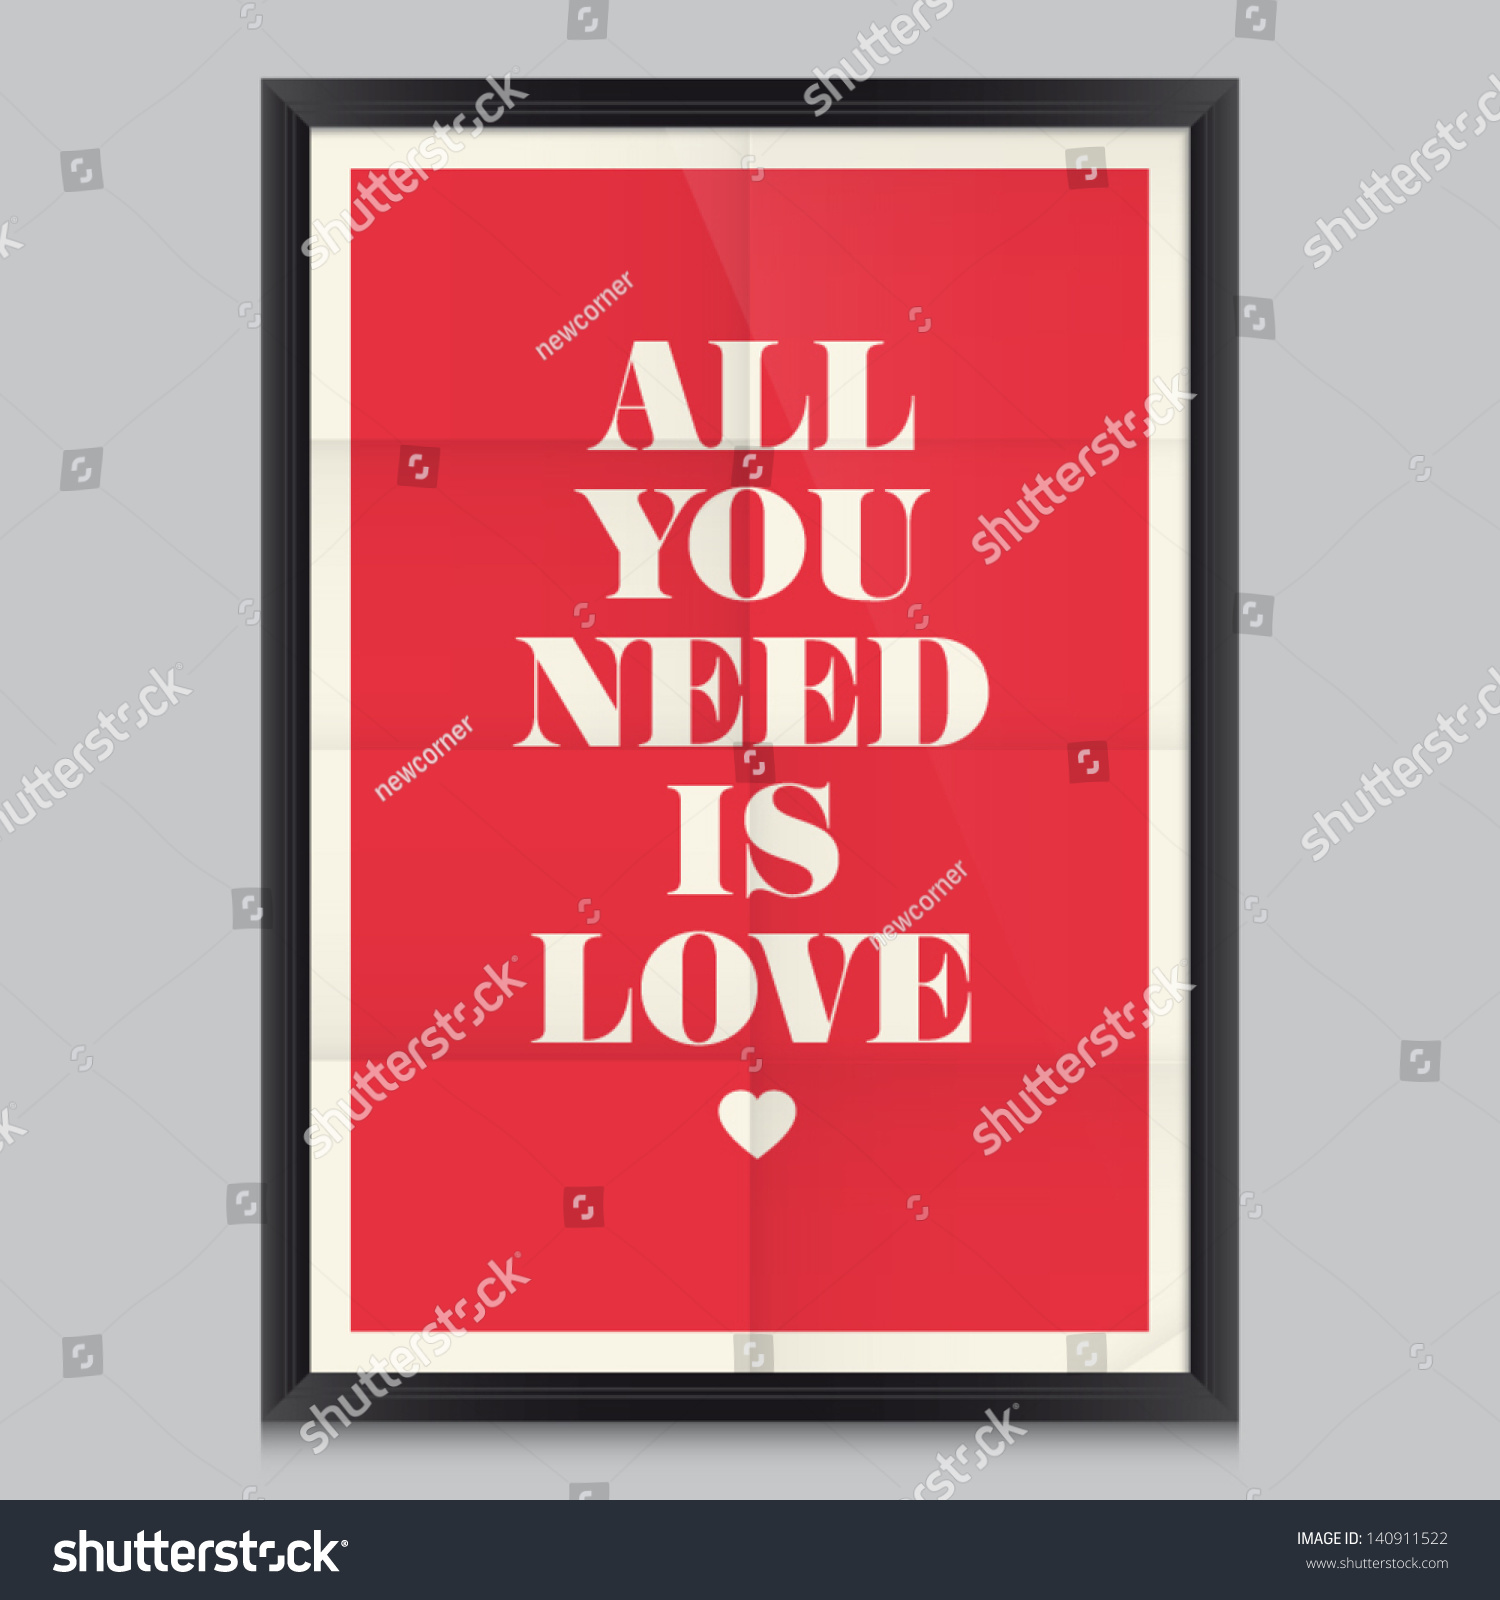 Love quote poster. Effects poster, frame, colors background and colors ...